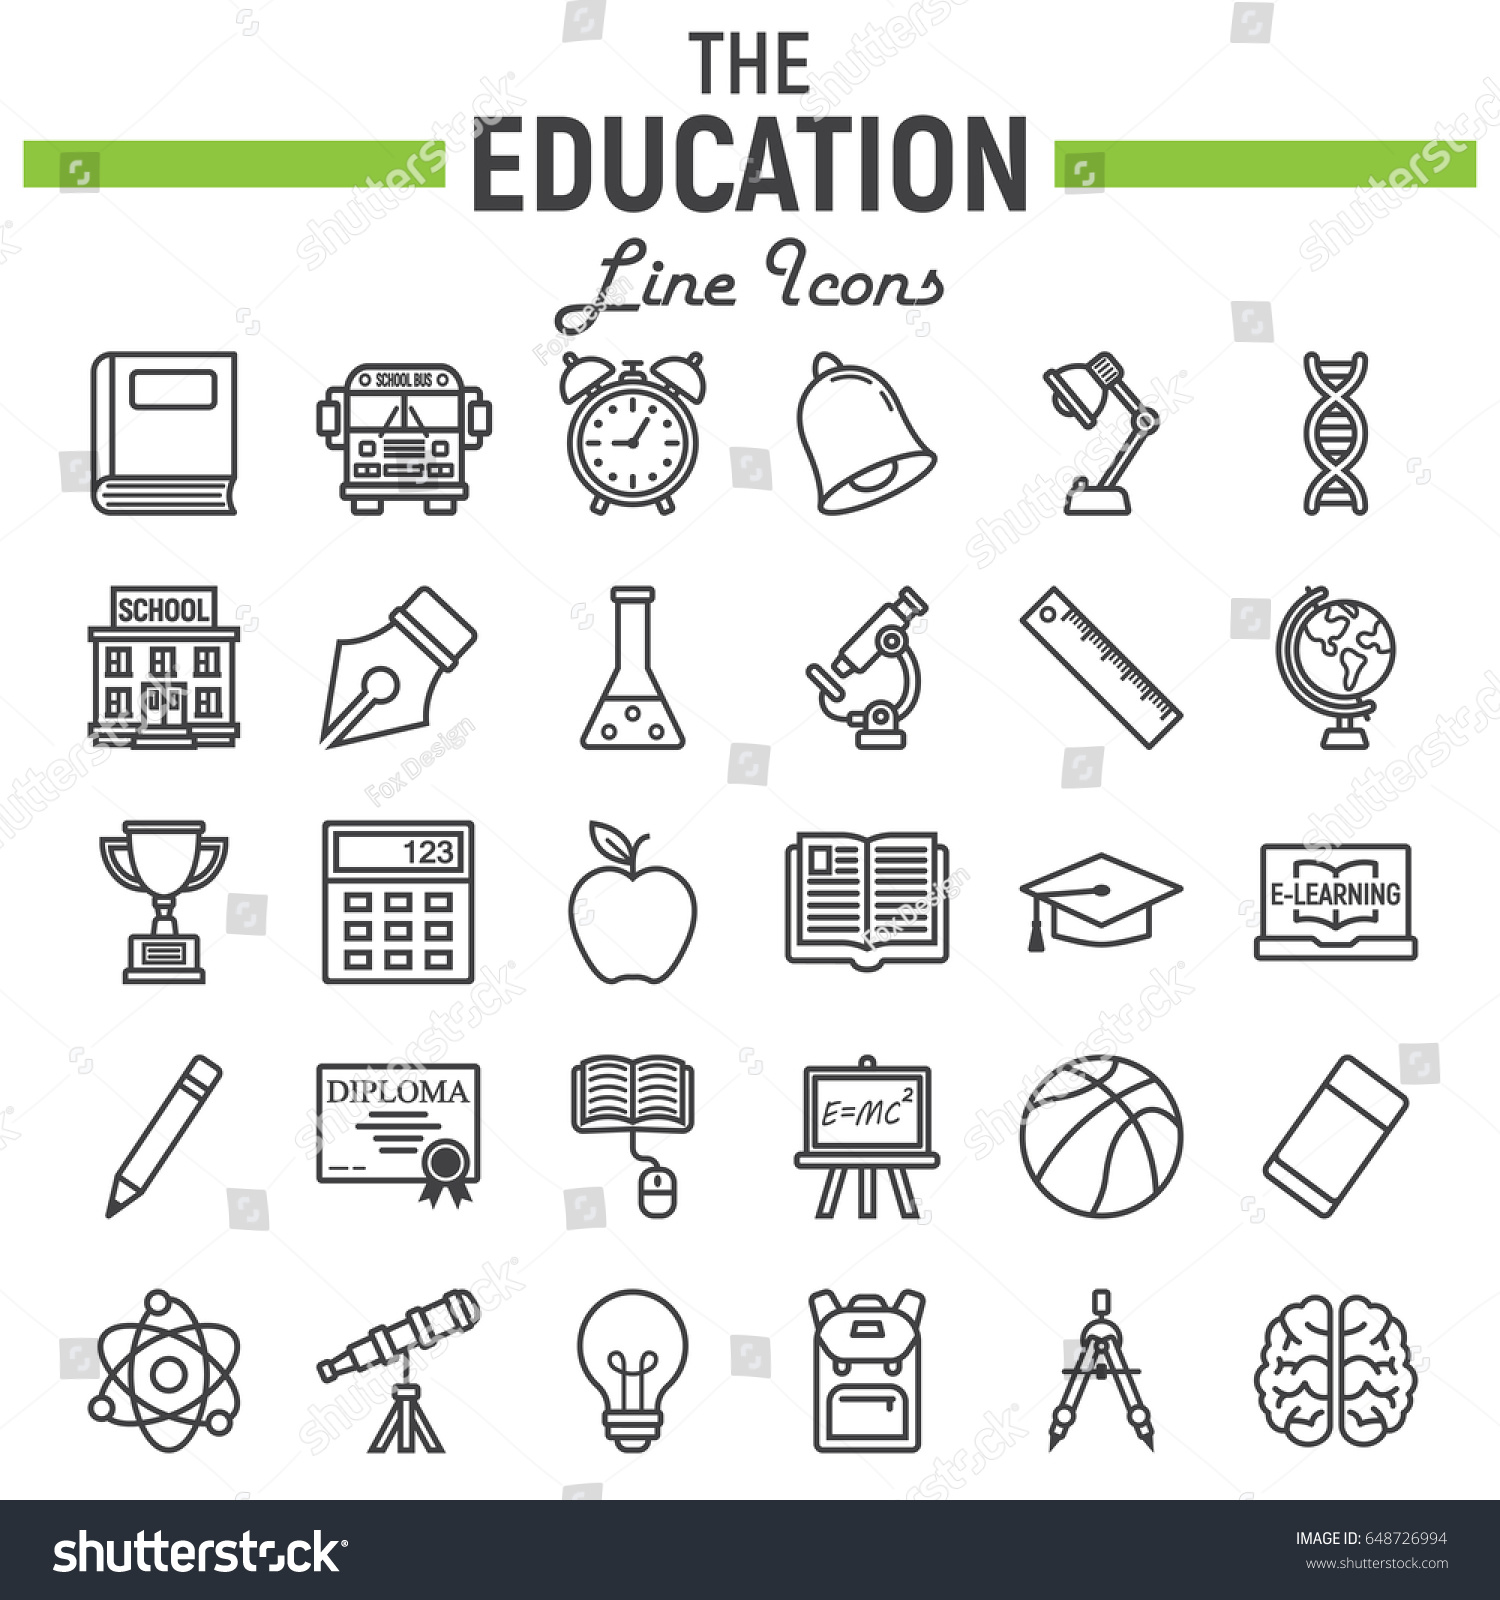 Education line icon set school symbols stock vector 648726994 education line icon set school symbols collection knowledge vector sketches logo illustrations biocorpaavc Image collections